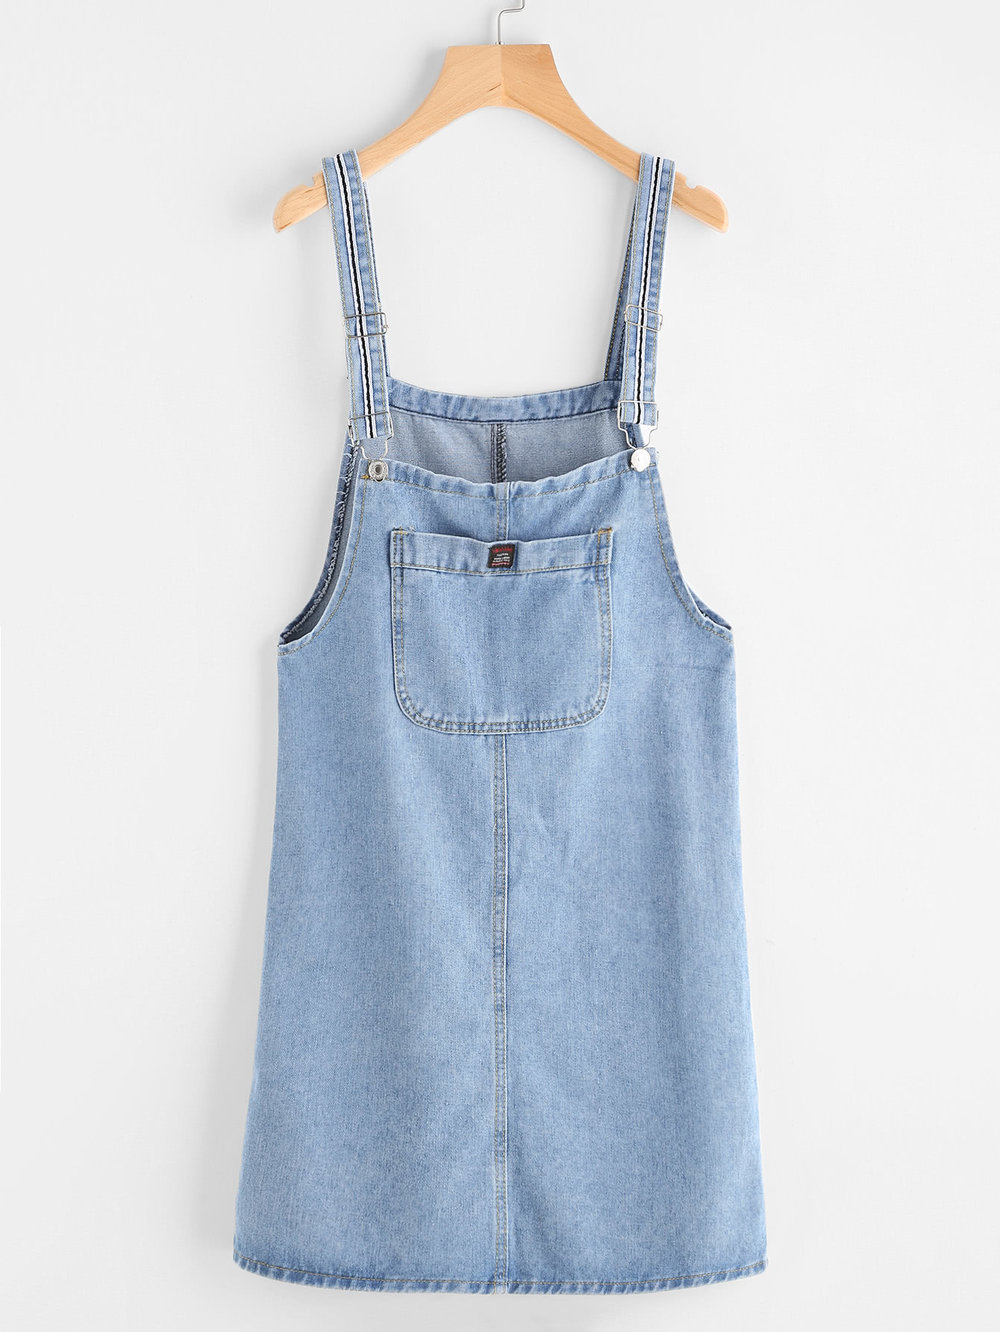 This or get vintage Tommy Hilfiger - I love when these are super simple no rips etc Pinafore Denim Dress With Pockets / Romwe / $16